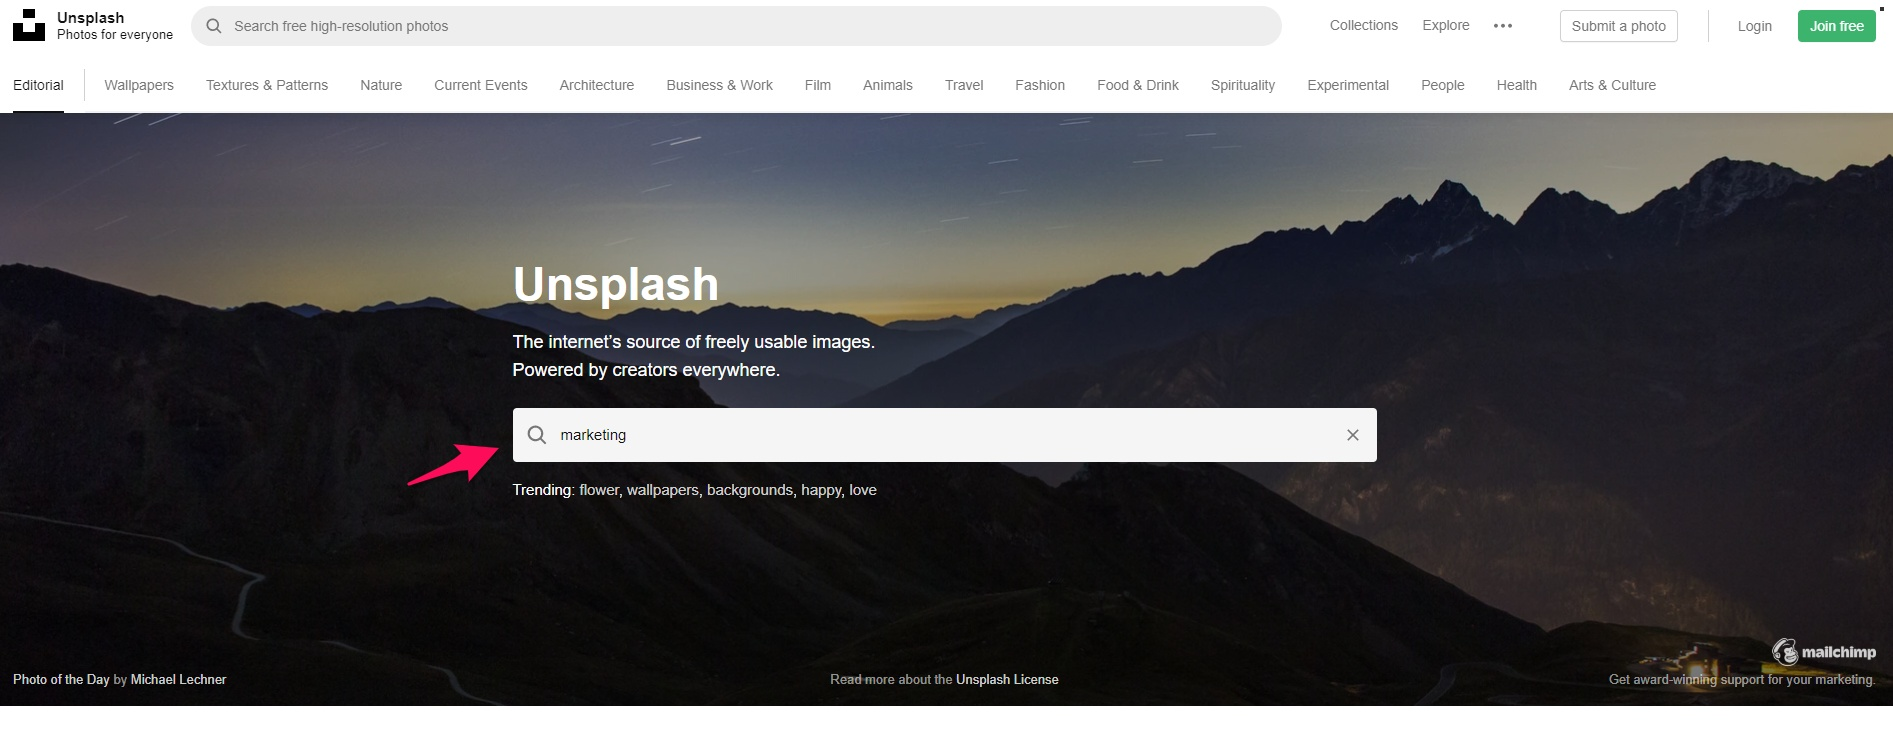 Unsplash home page